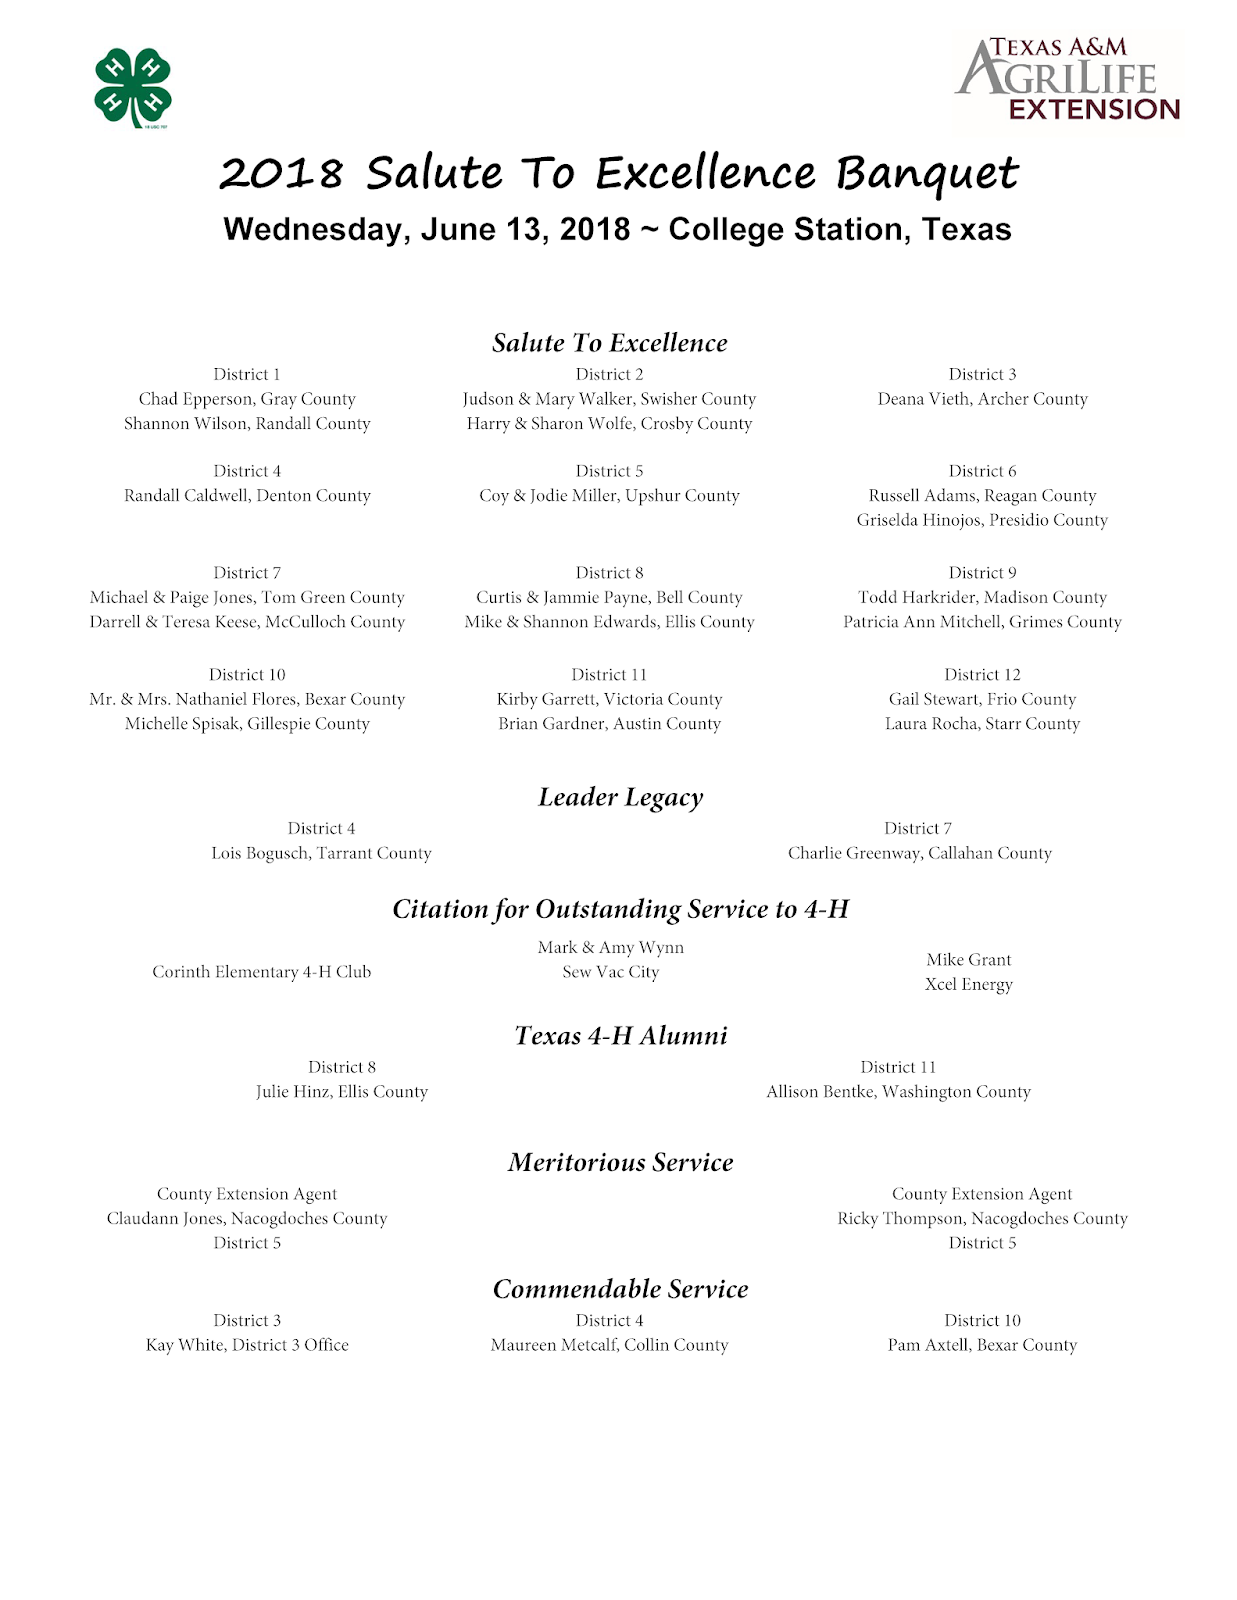 Salute to Excellence Honorees Announced | Texas 4-H